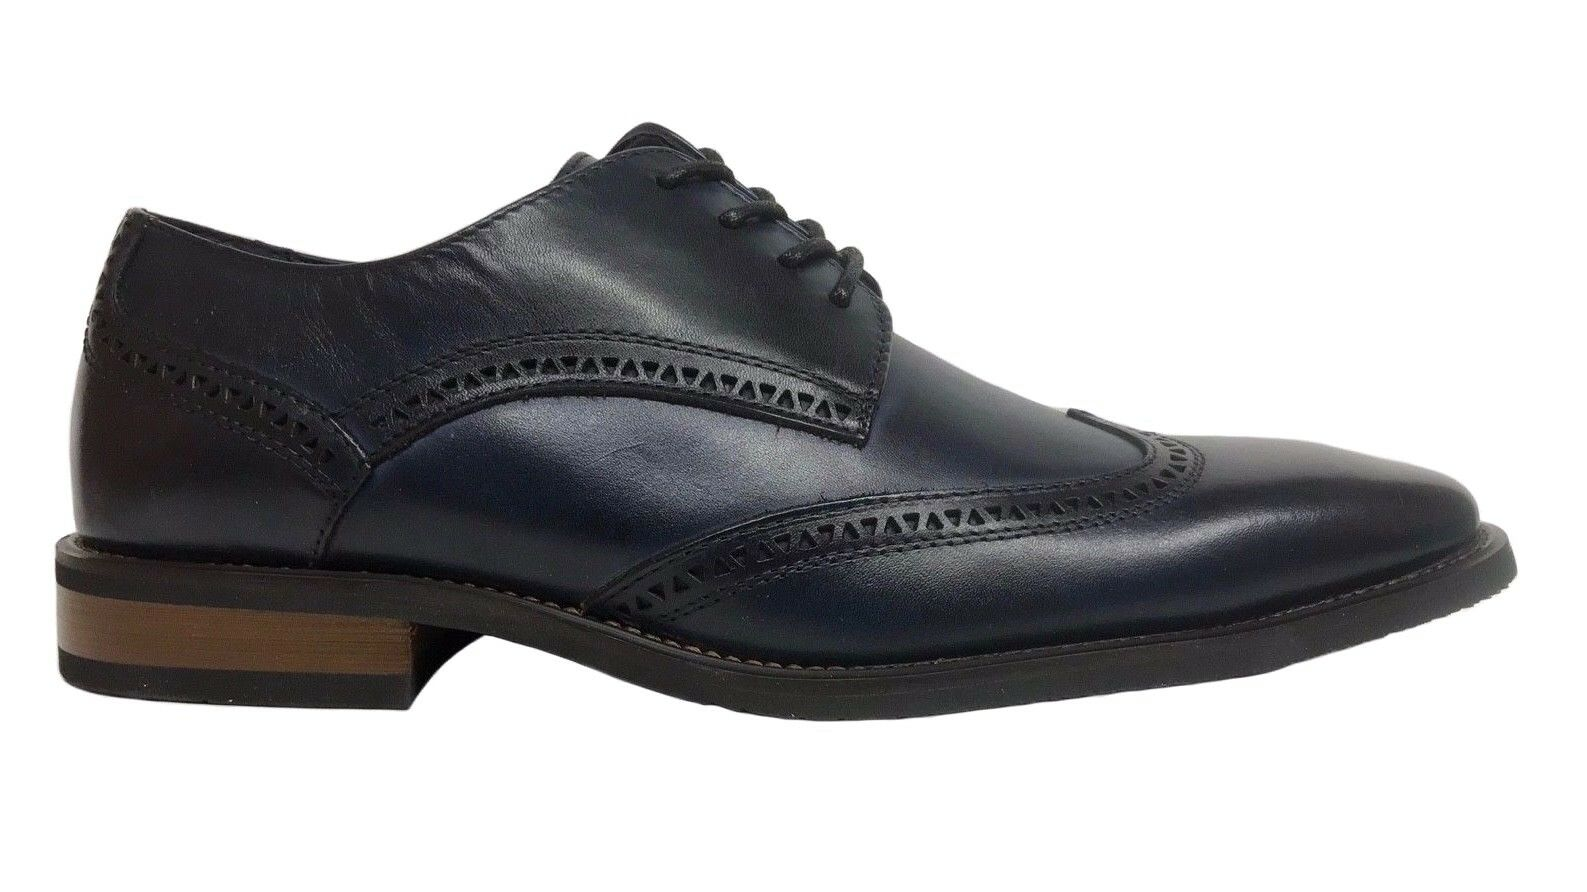 La Milano Men's Oxford Wing Tip Navy Leather Dress Shoes A11577 1